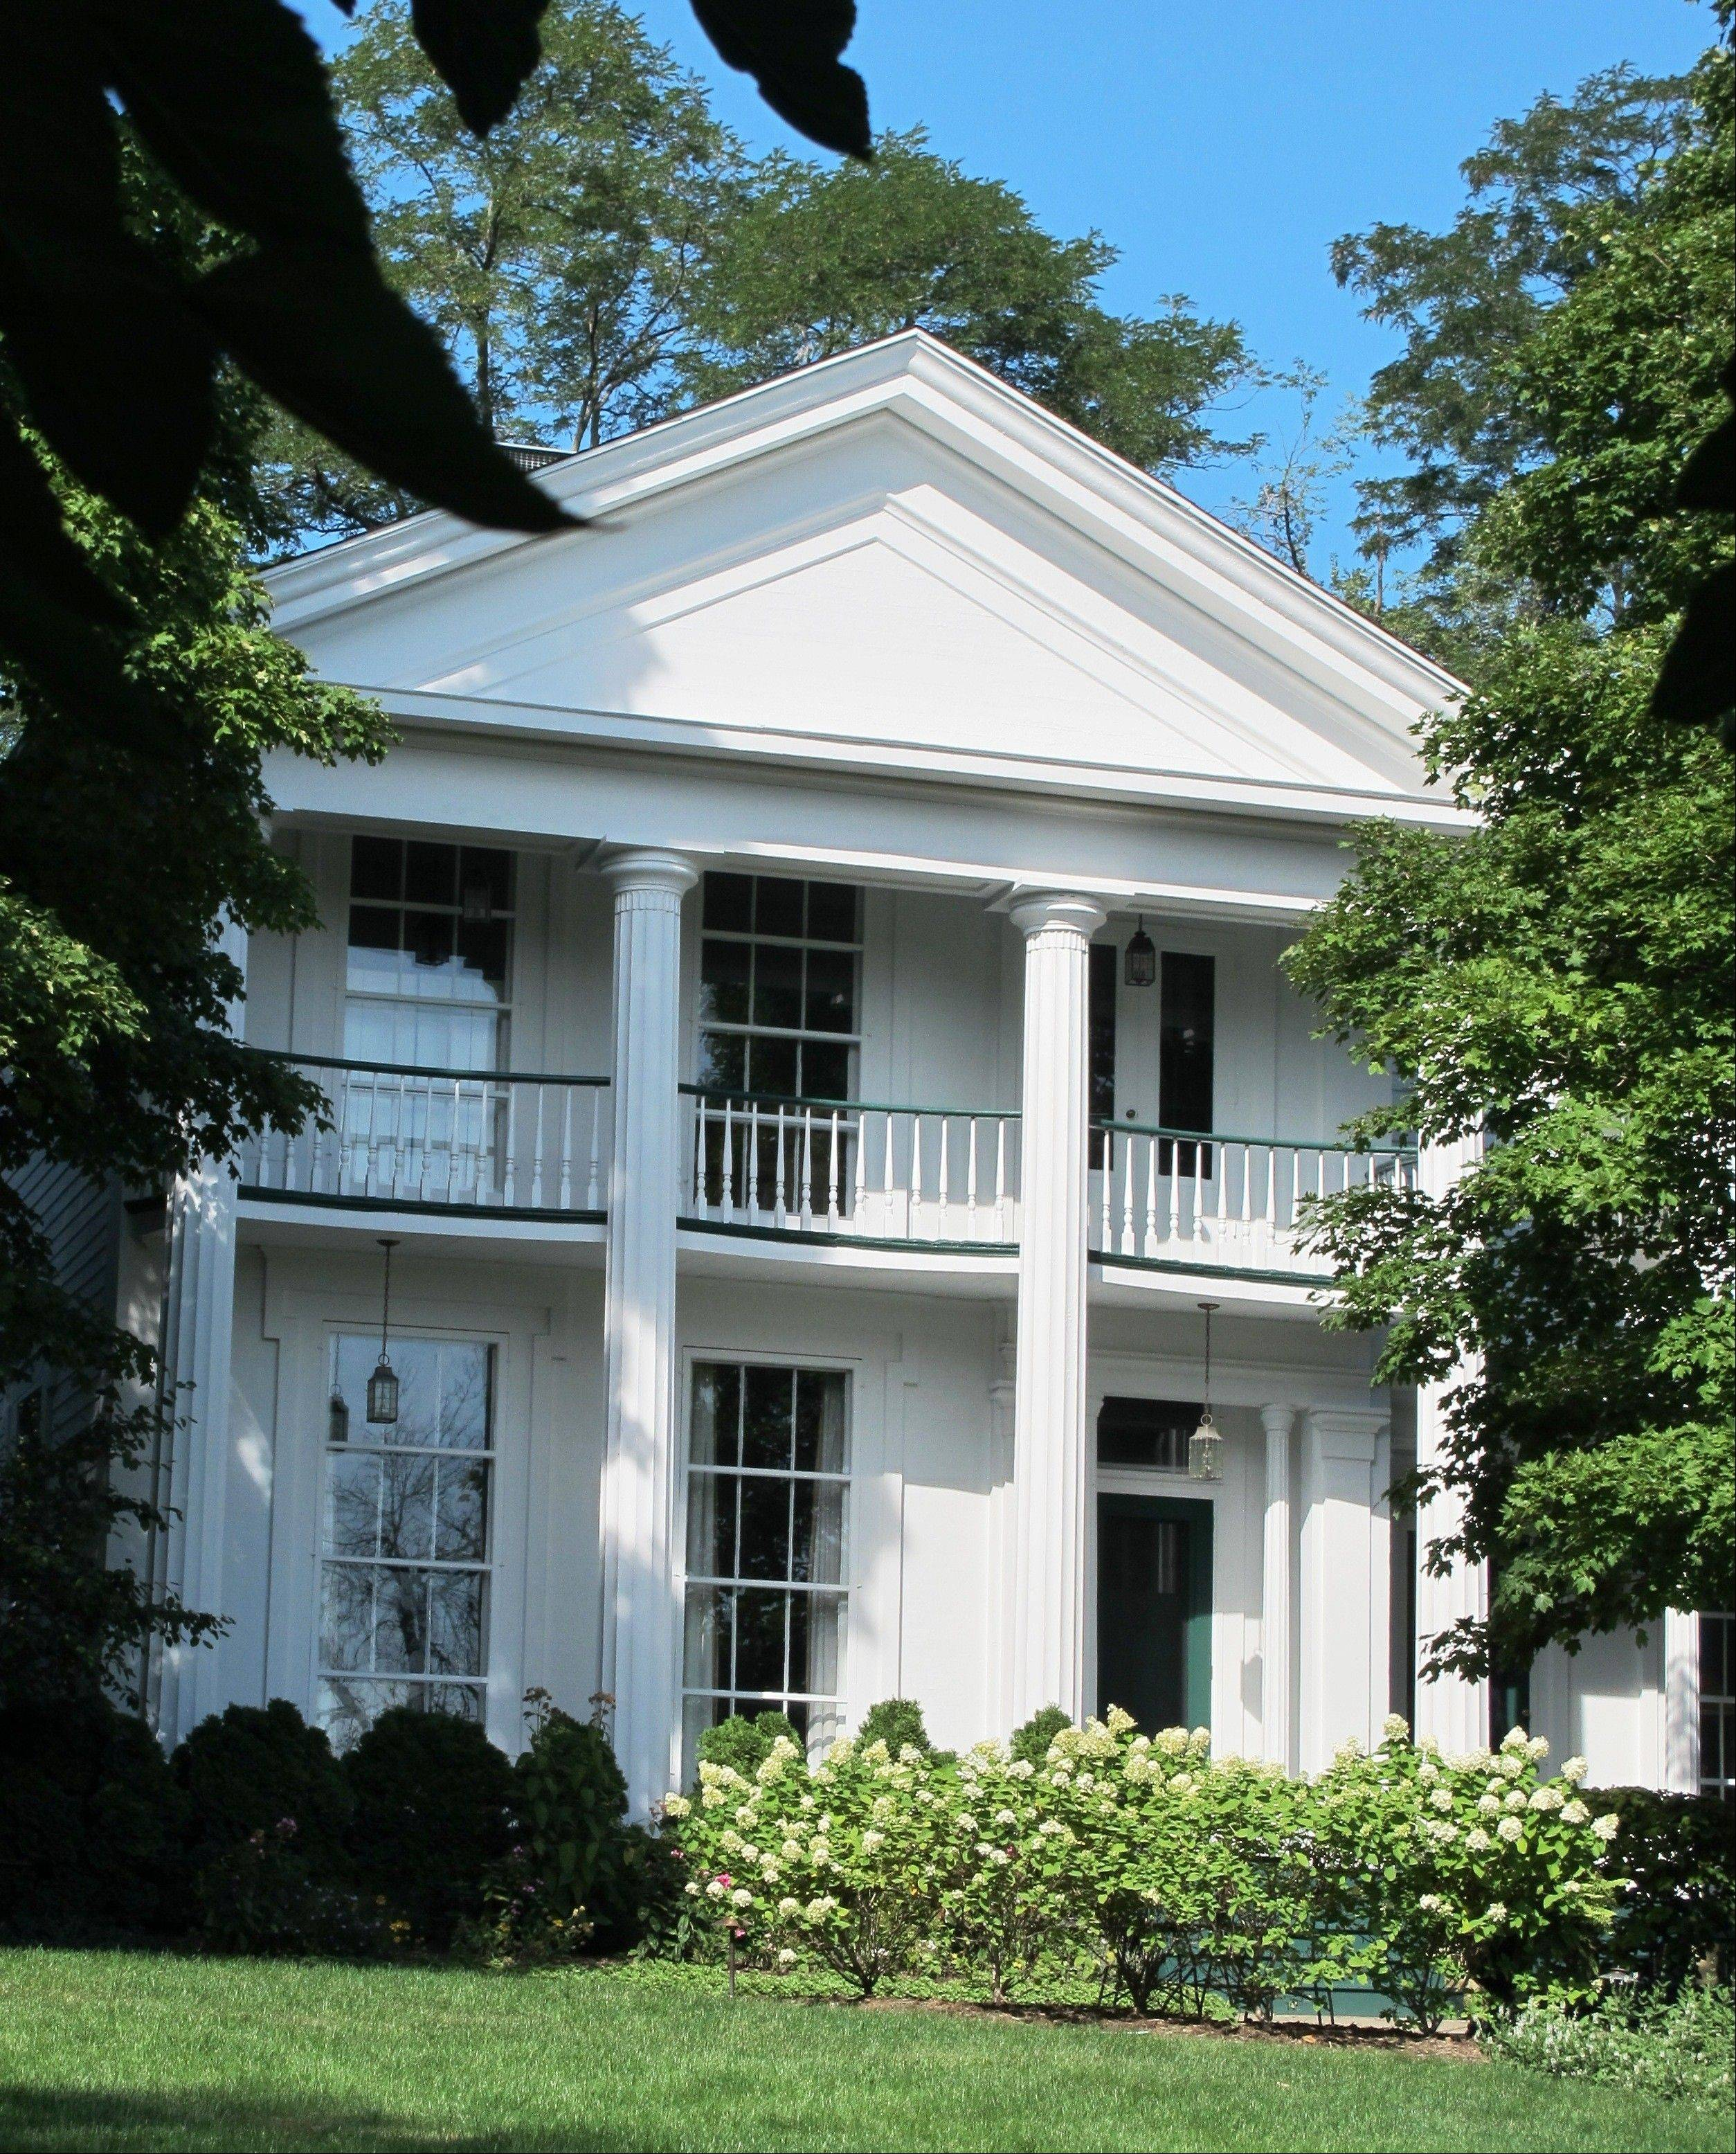 This 1859 Greek Revival home was once owned by James Lewis, an early mayor of St. Charles.